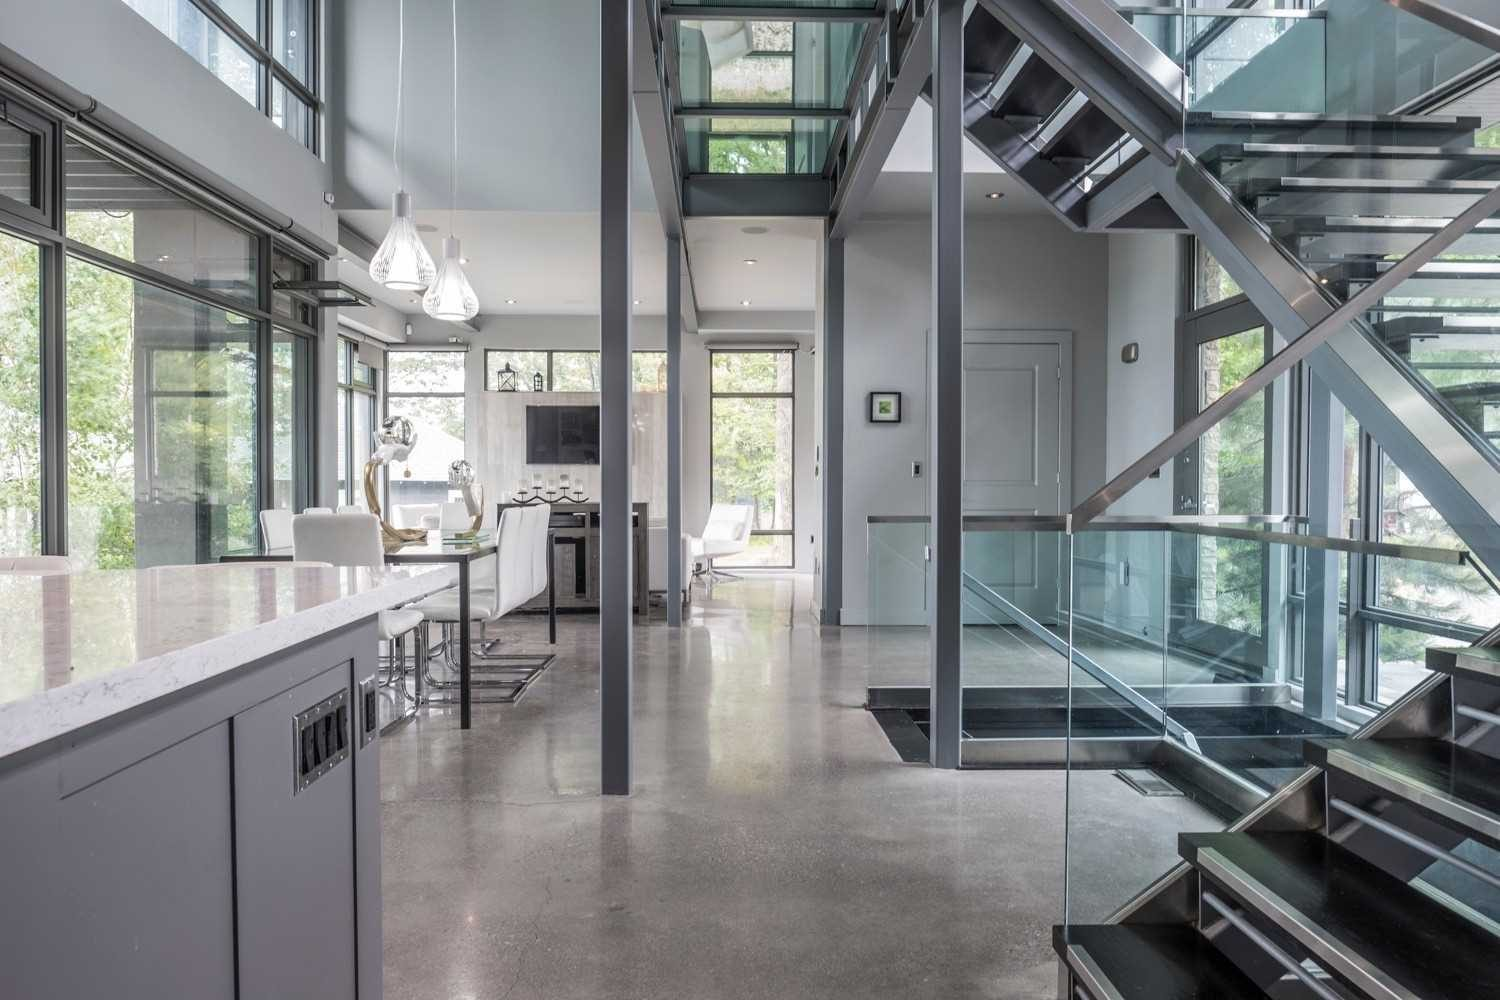 Ultra modern glass and metal staircase design. Concrete floors. Industrial design.